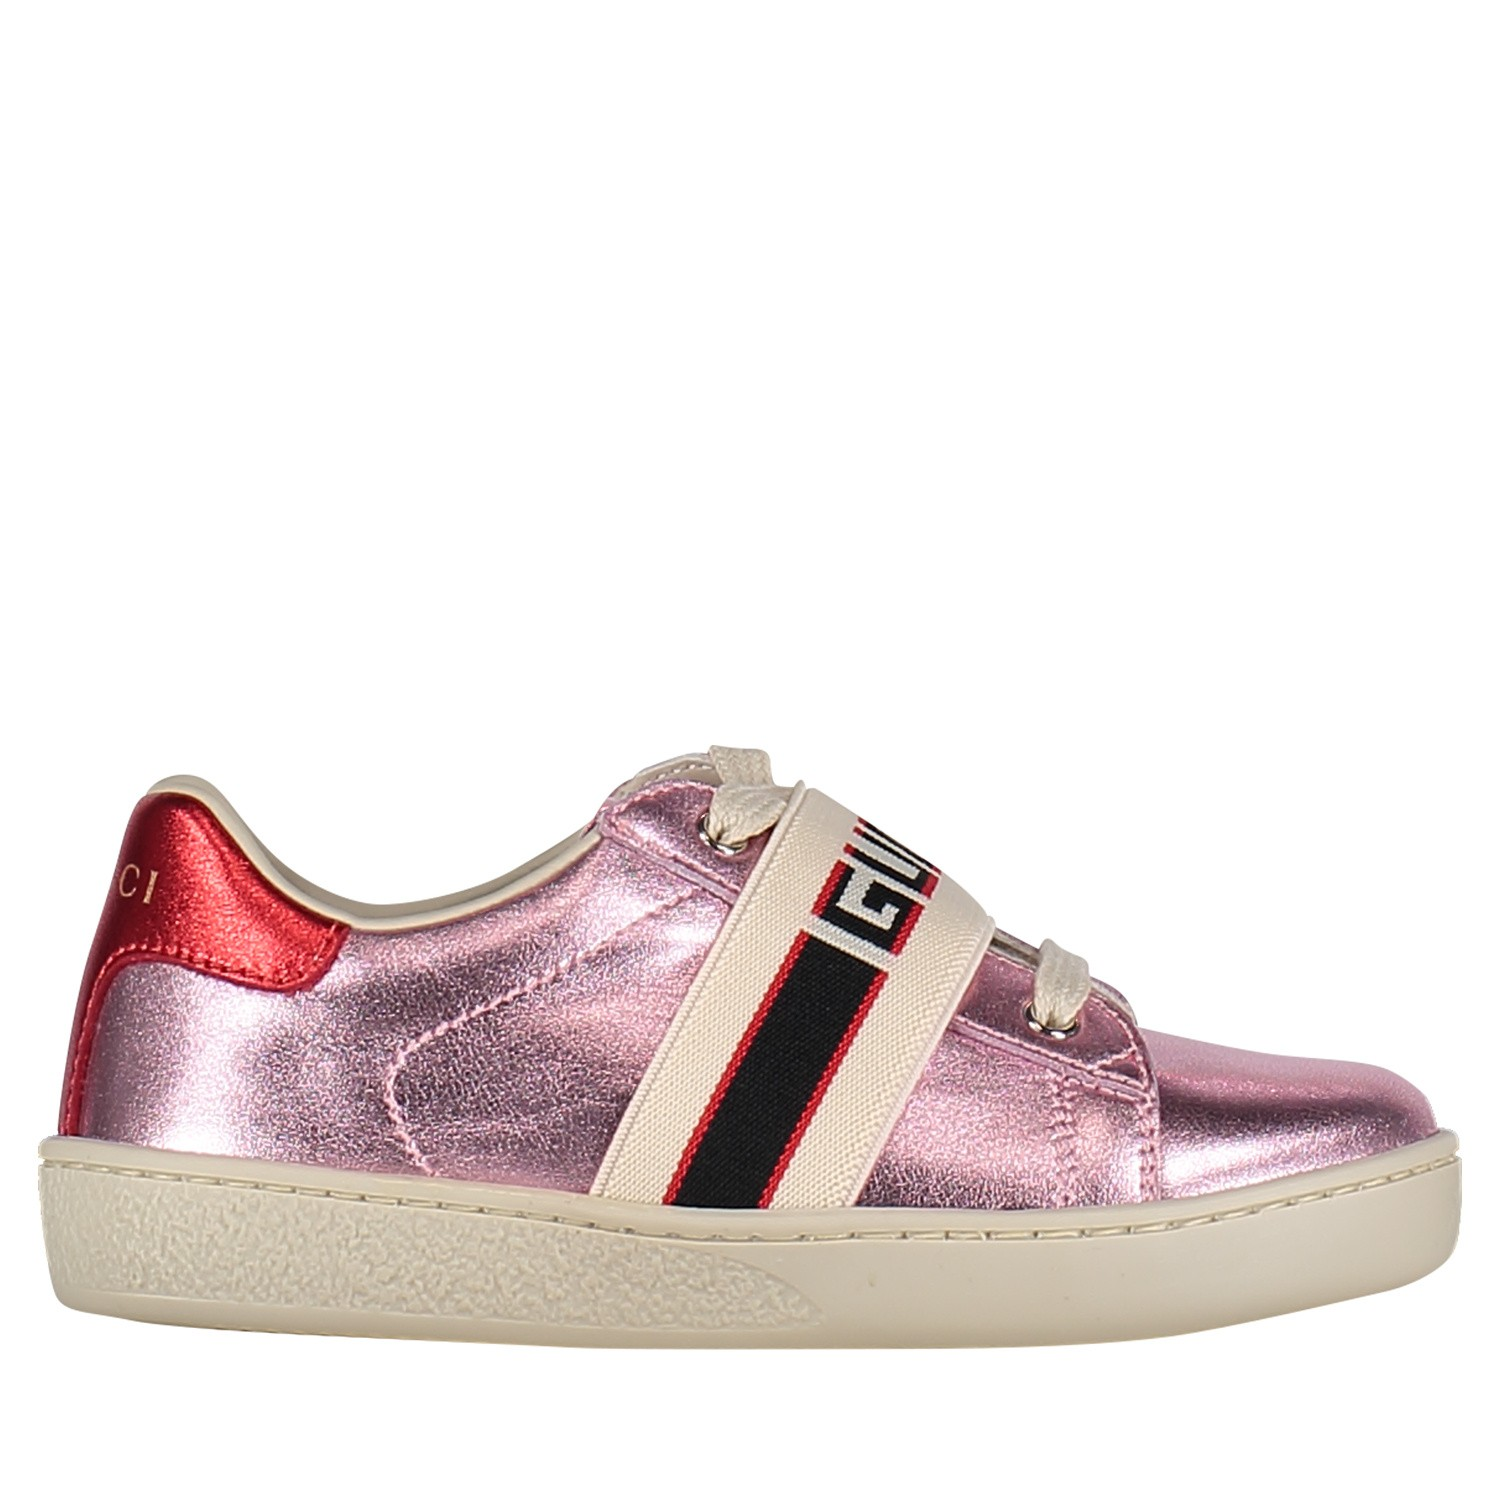 a9a4a676107 Afbeelding van Gucci 552940 kindersneakers licht roze